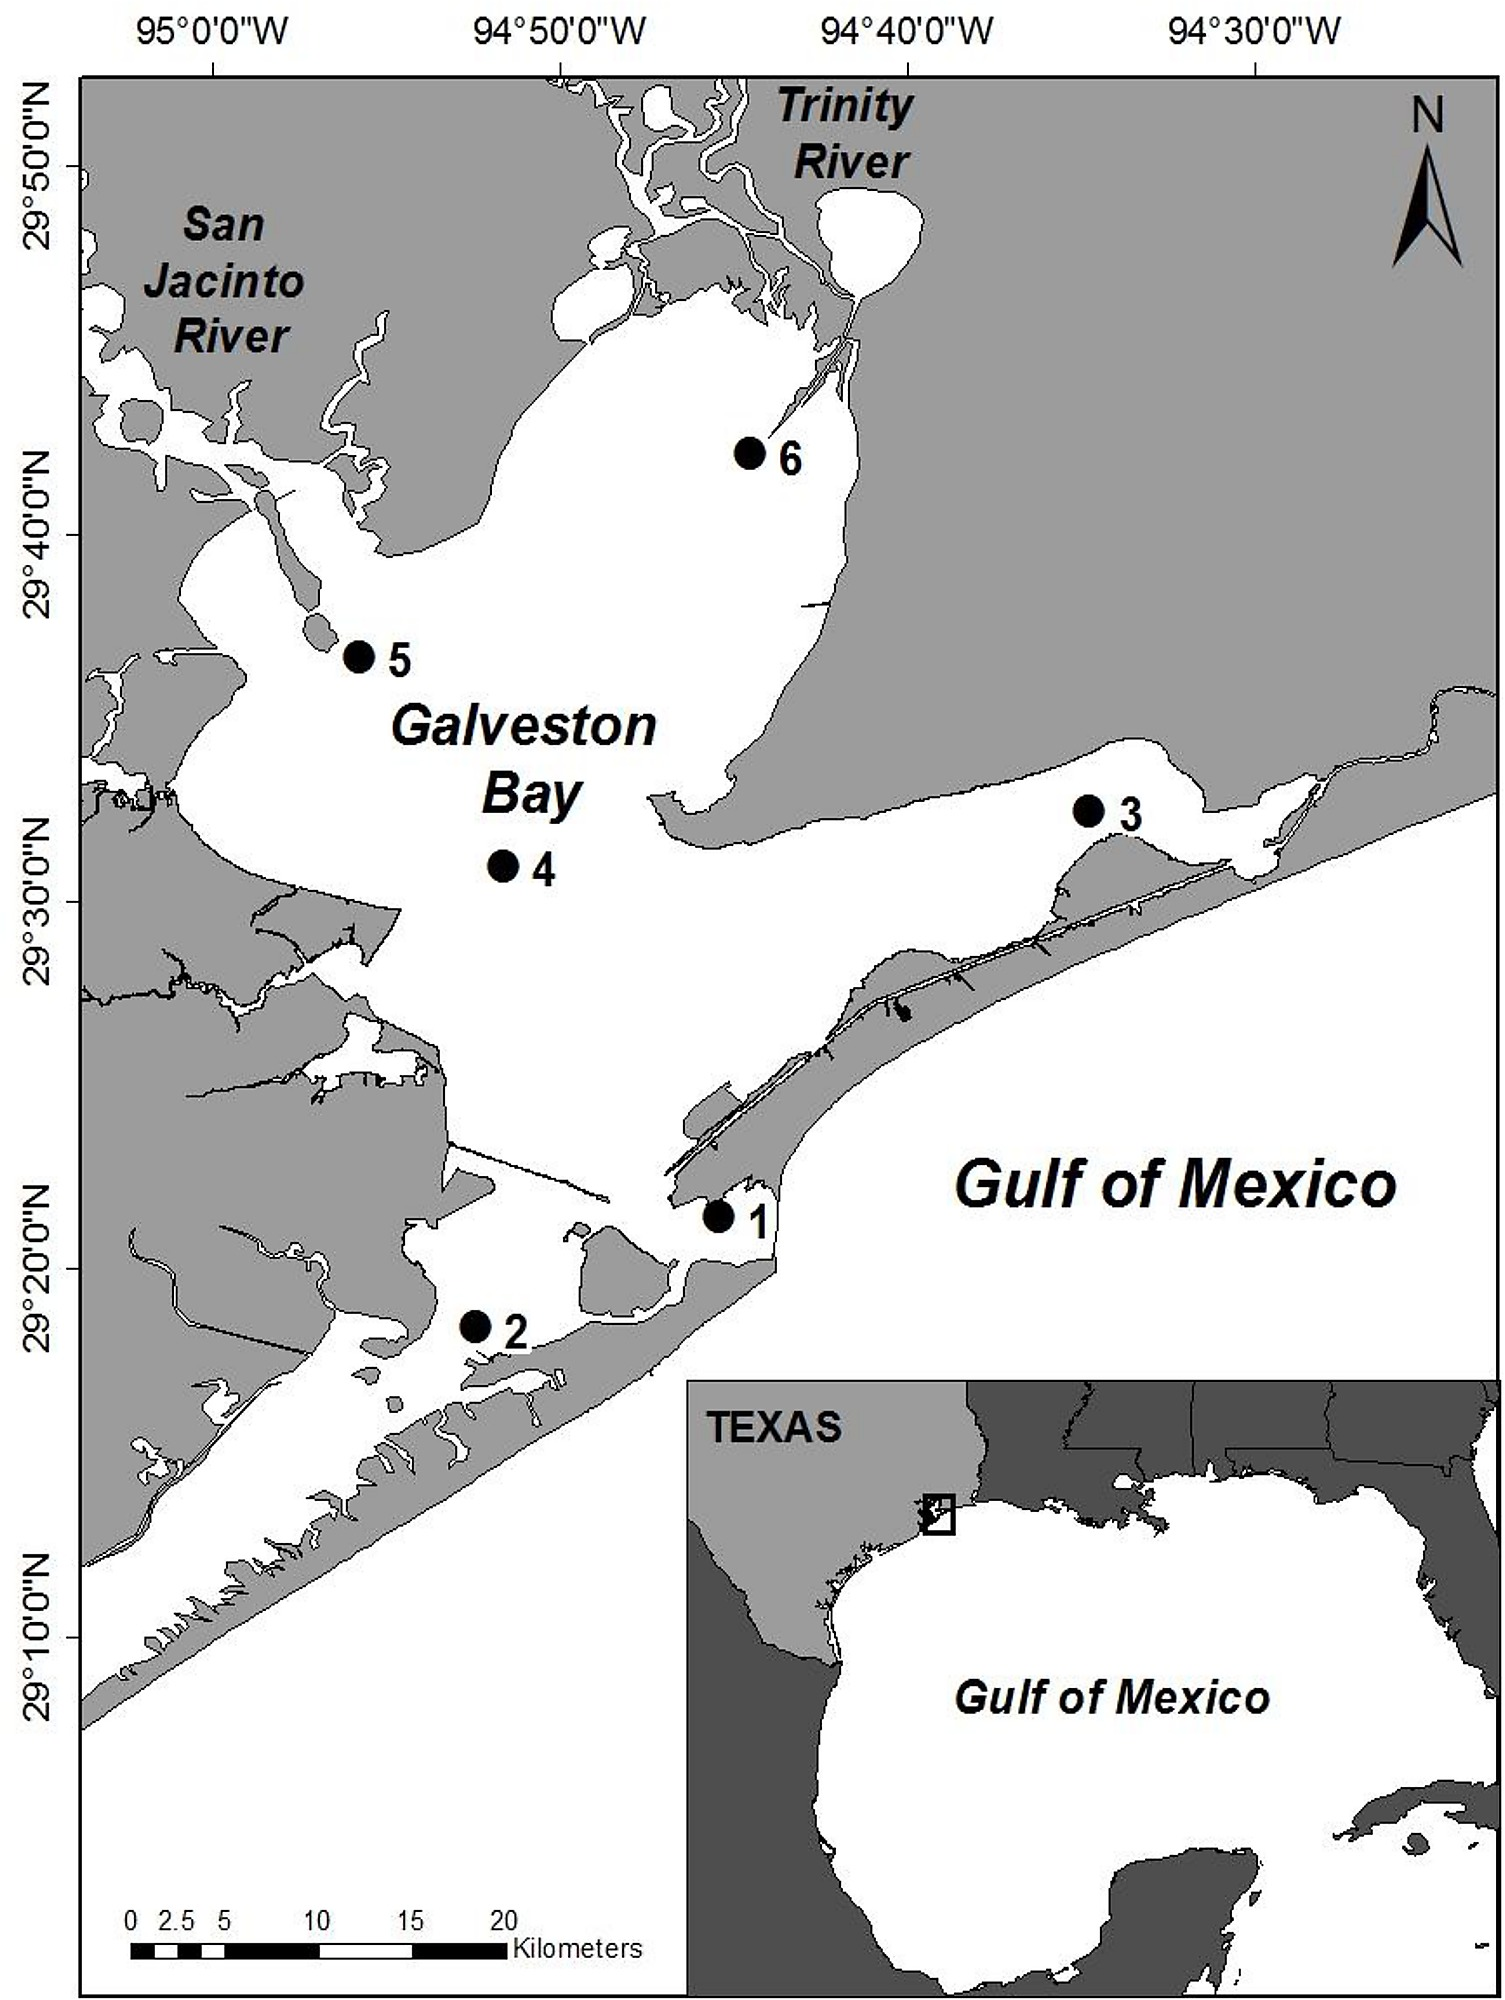 Map Of Galveston Bay Texas USA Showing The Locations Of The Six - Major rivers in usa map